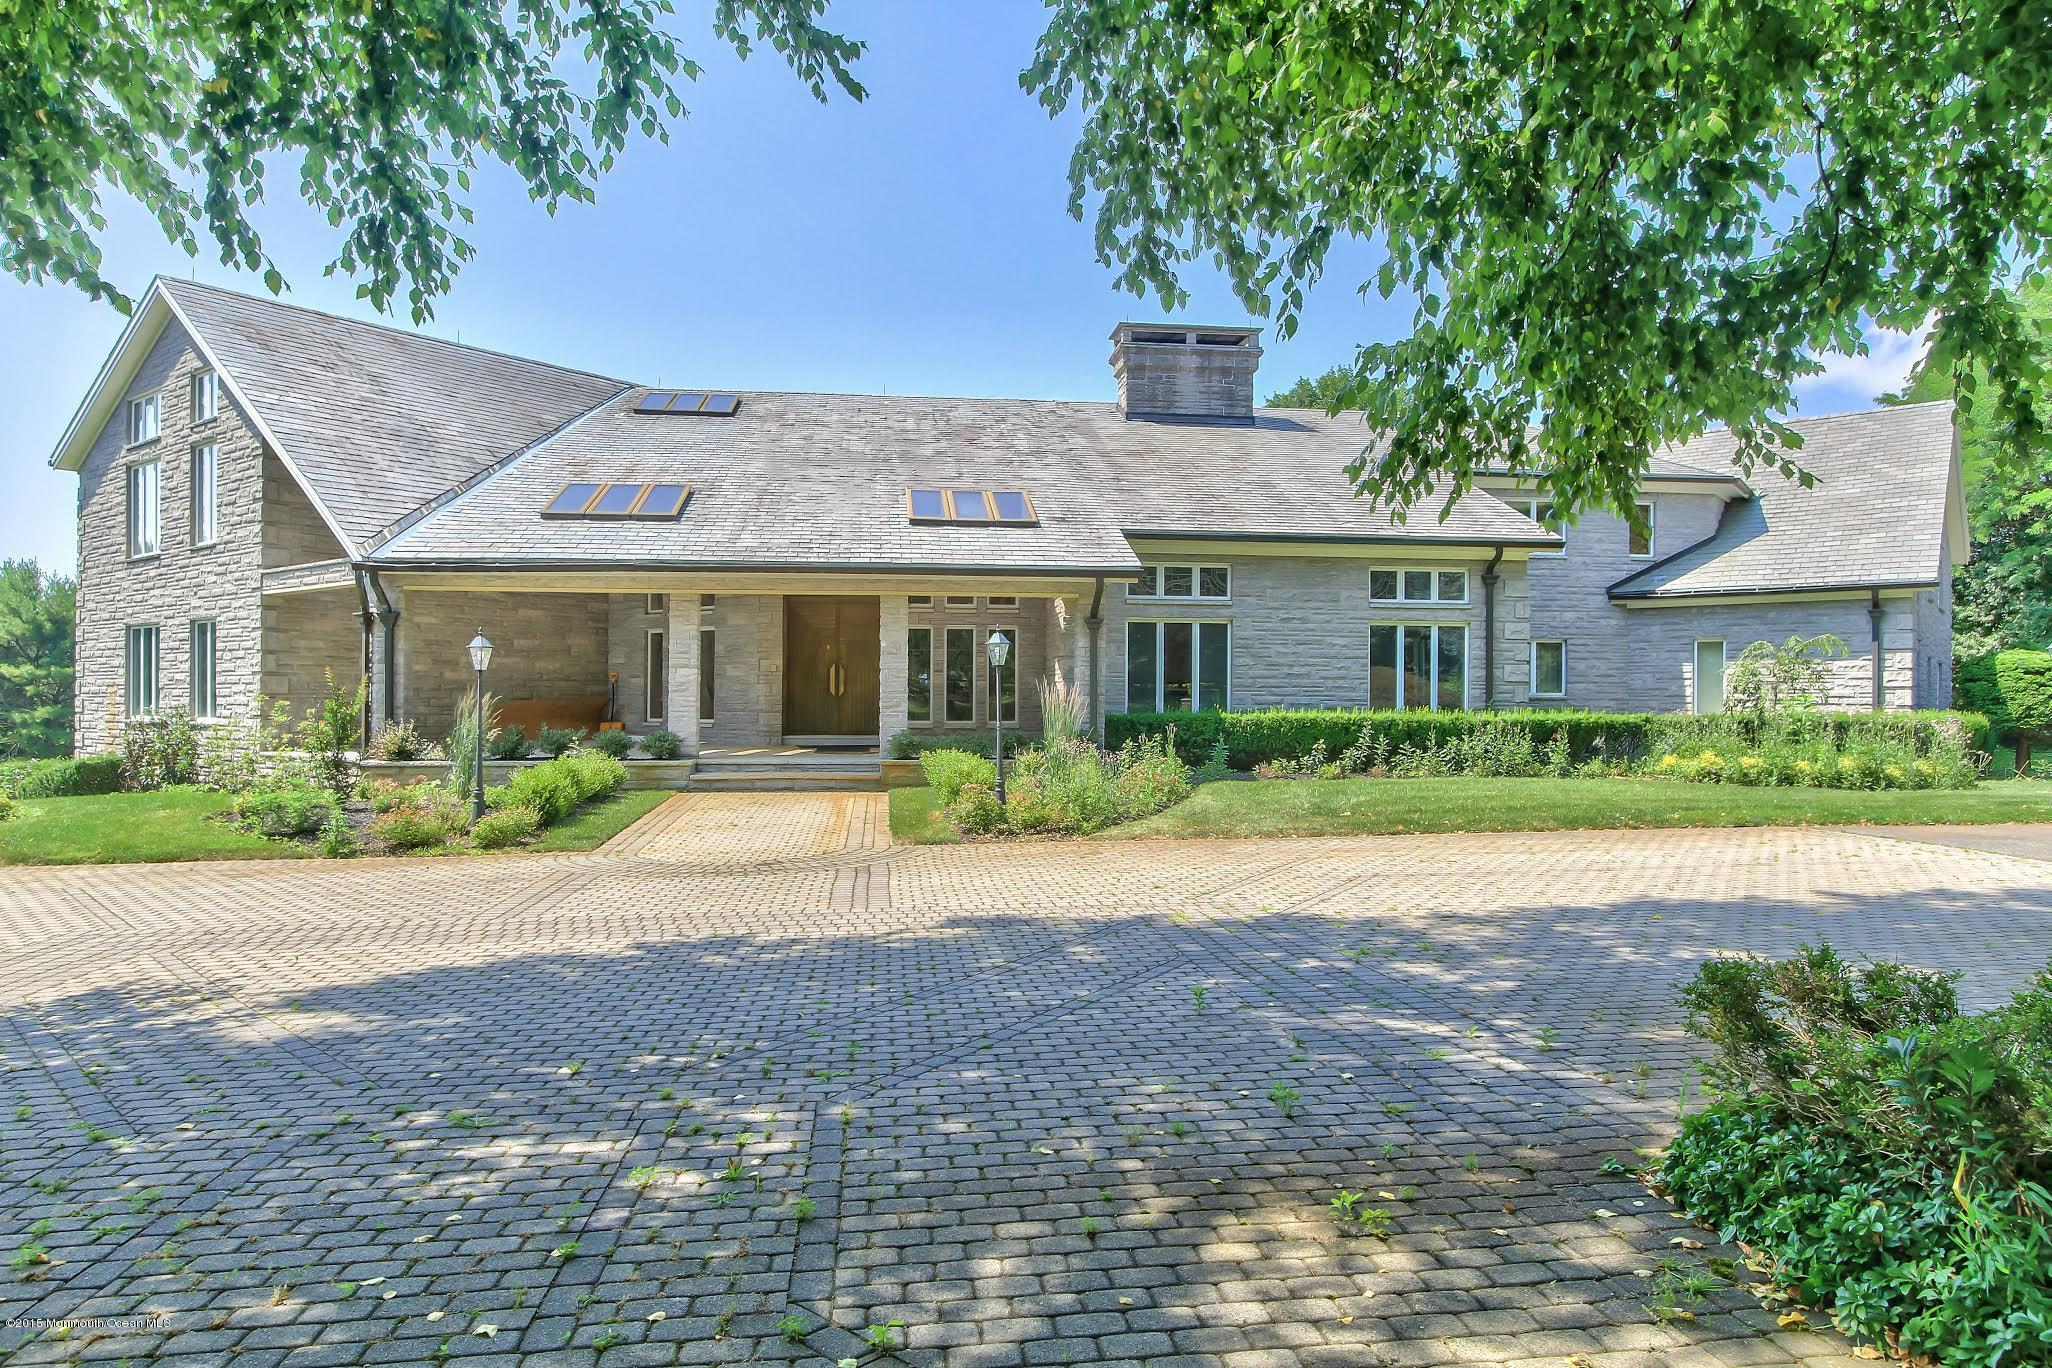 Photo of 2 Pacer Court, Colts Neck, NJ 07722